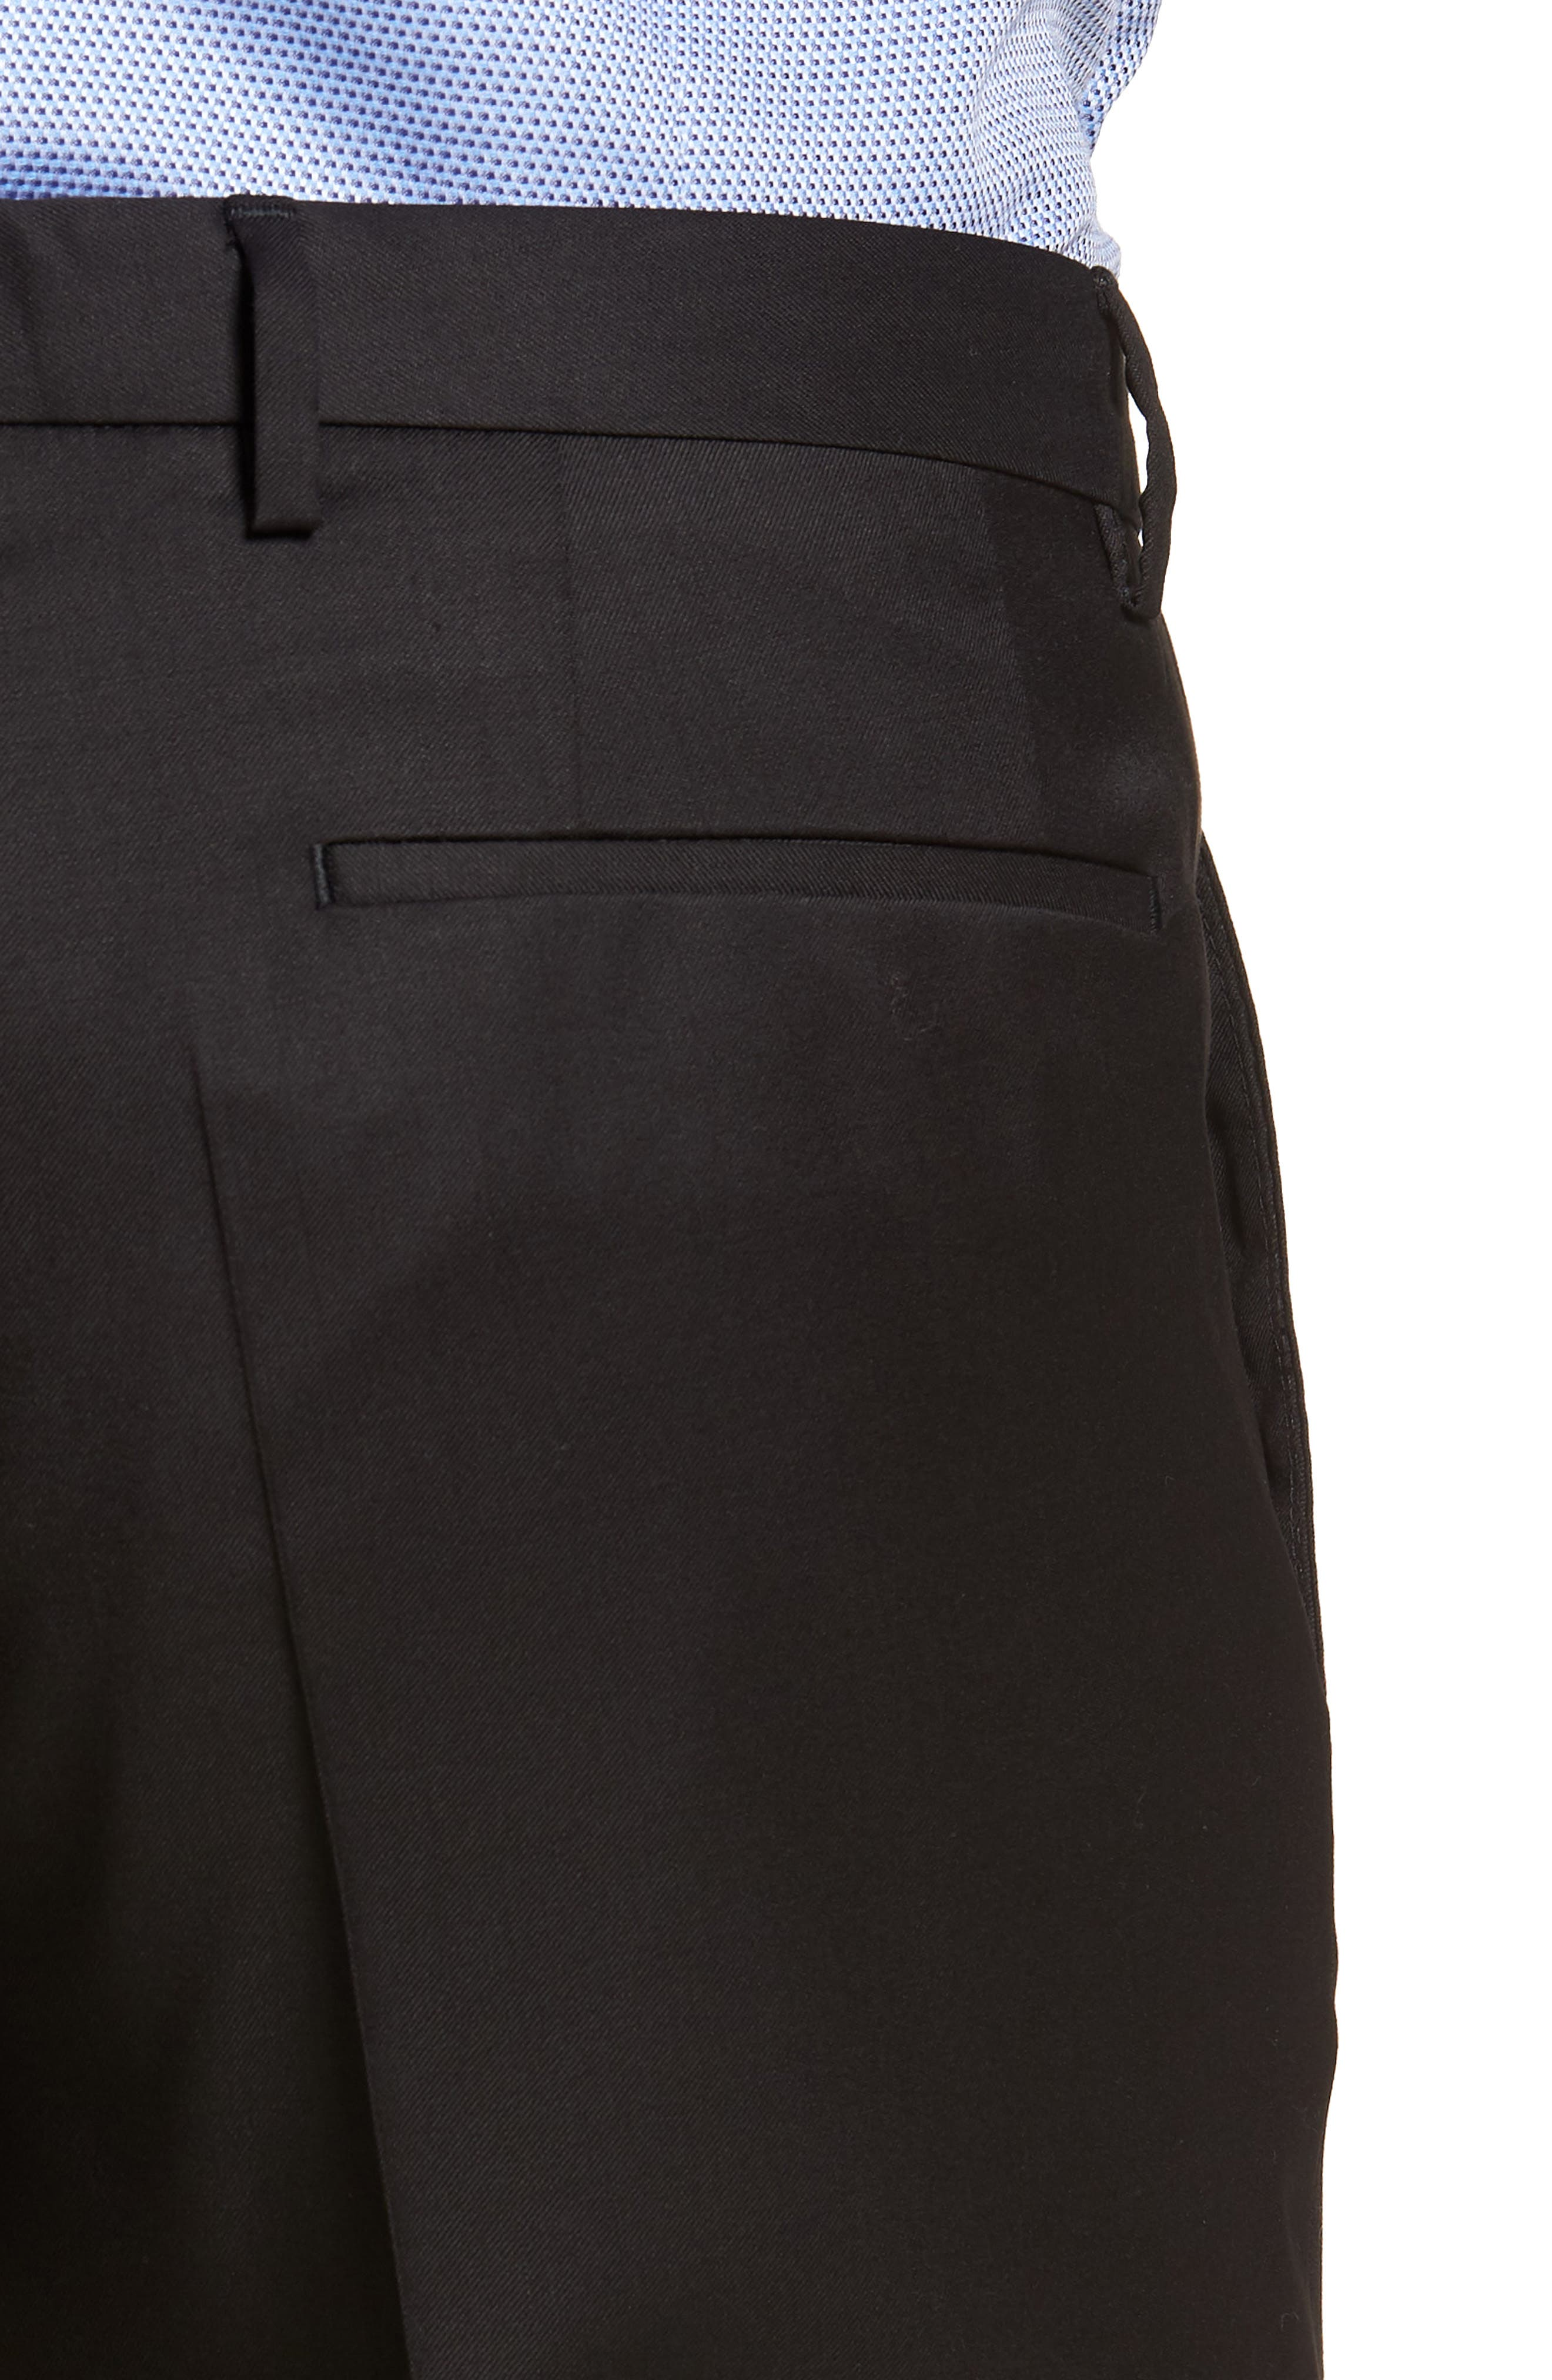 Wave CYL Flat Front Solid Wool Trousers,                             Alternate thumbnail 4, color,                             Black